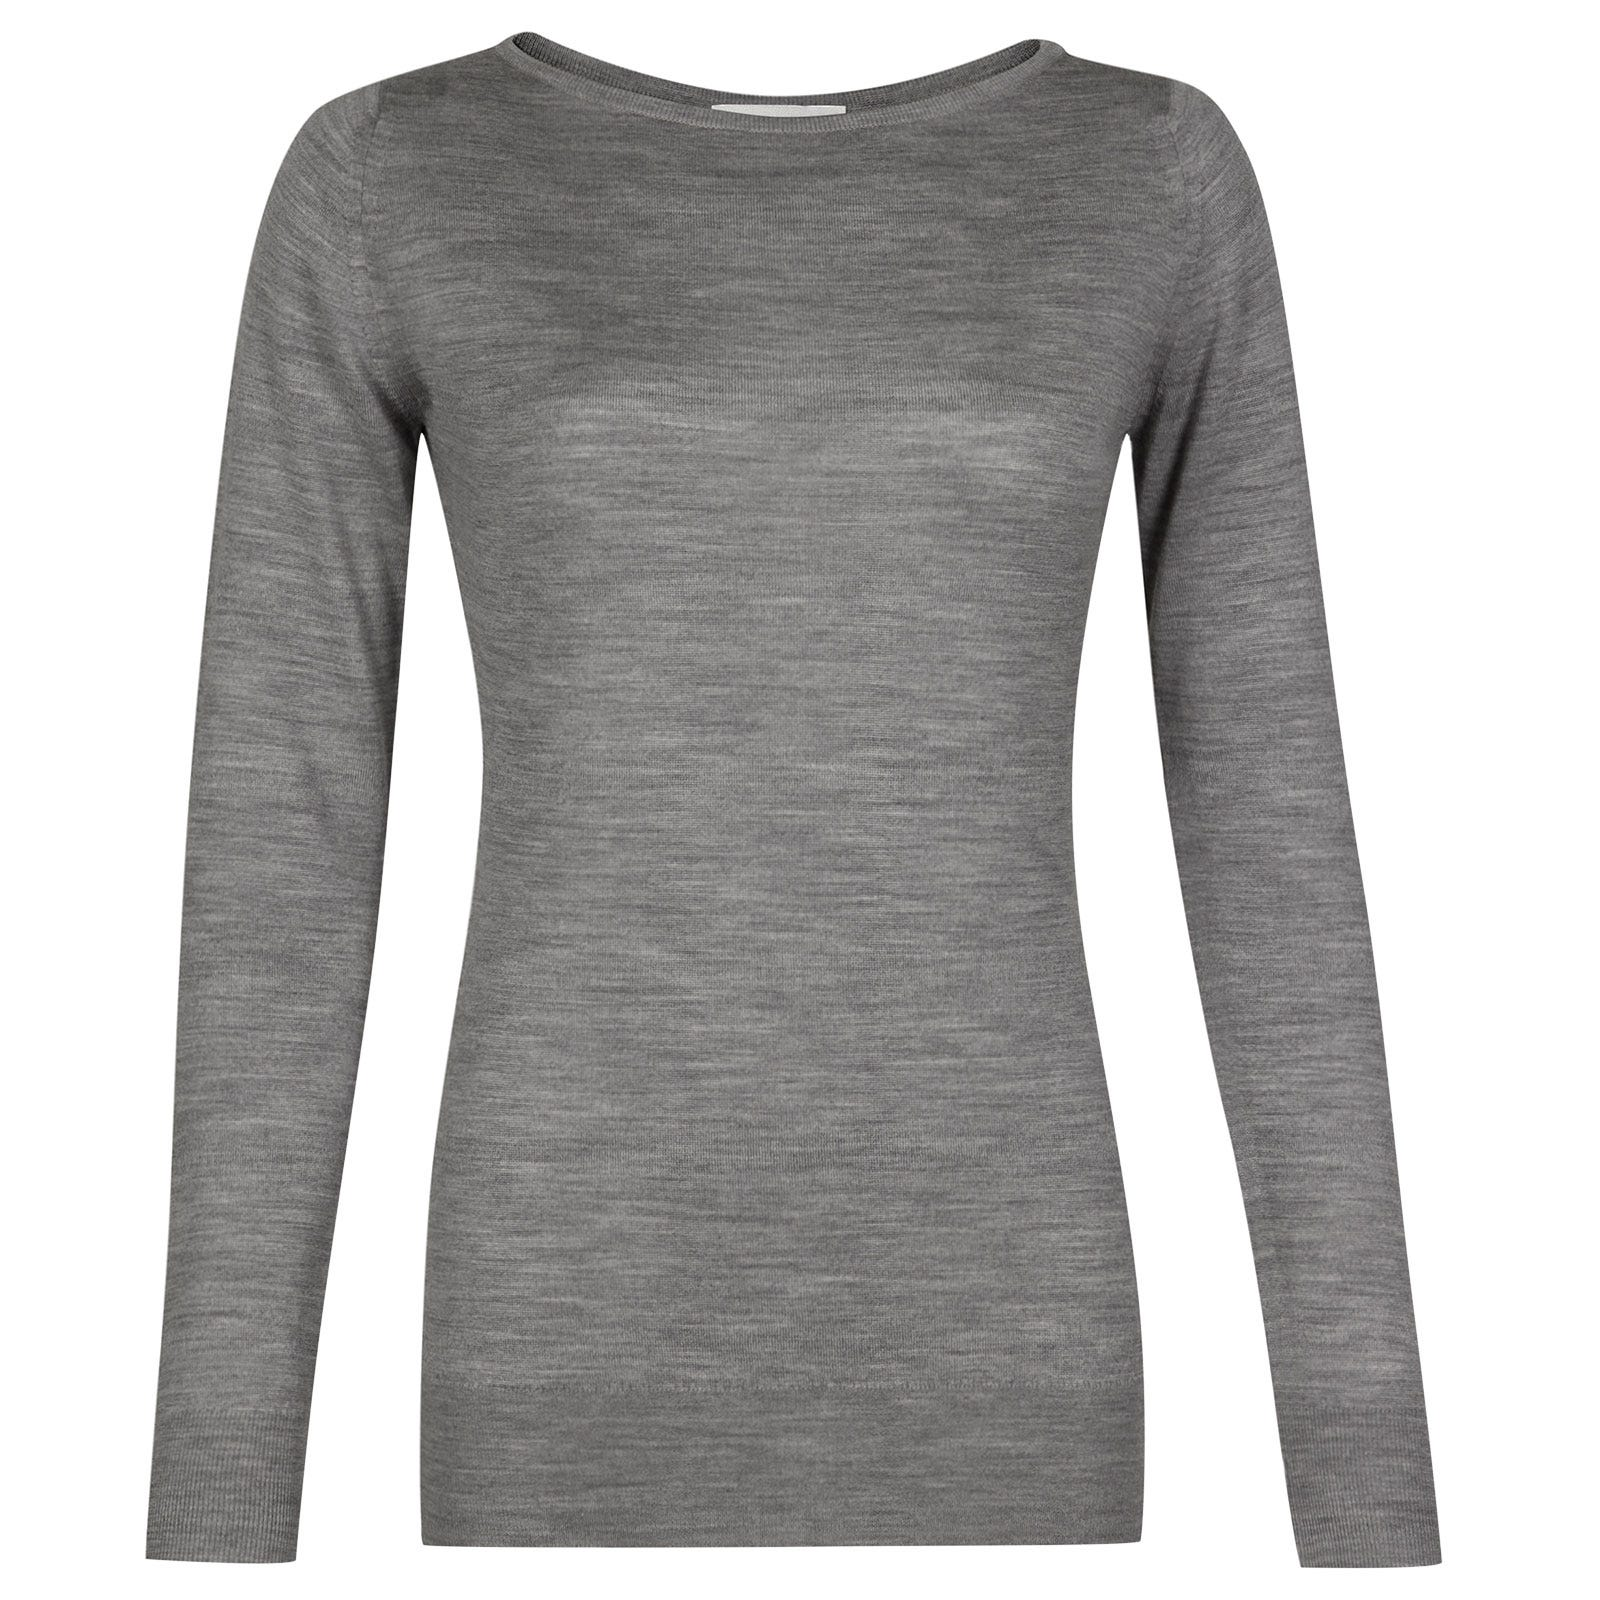 John Smedley susan Merino Wool Sweater in Silver-XL